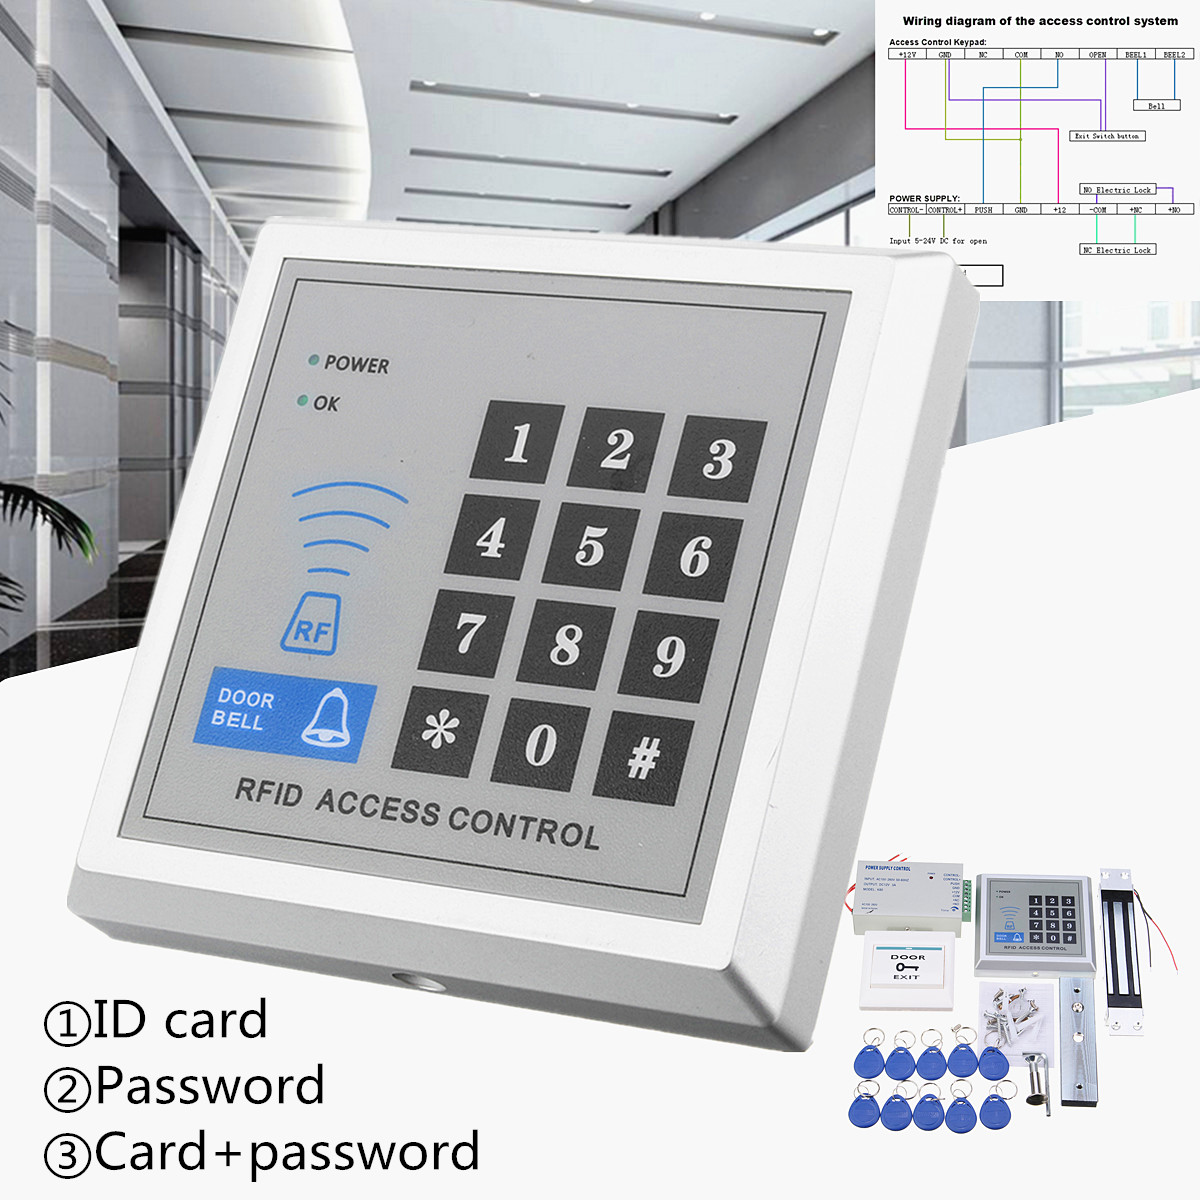 RFID Biometric Fingerprint Access Control Door Lock System Kit Card Reader Keypad+ Electric Magnetic/Bolt/Strike LockRFID Biometric Fingerprint Access Control Door Lock System Kit Card Reader Keypad+ Electric Magnetic/Bolt/Strike Lock